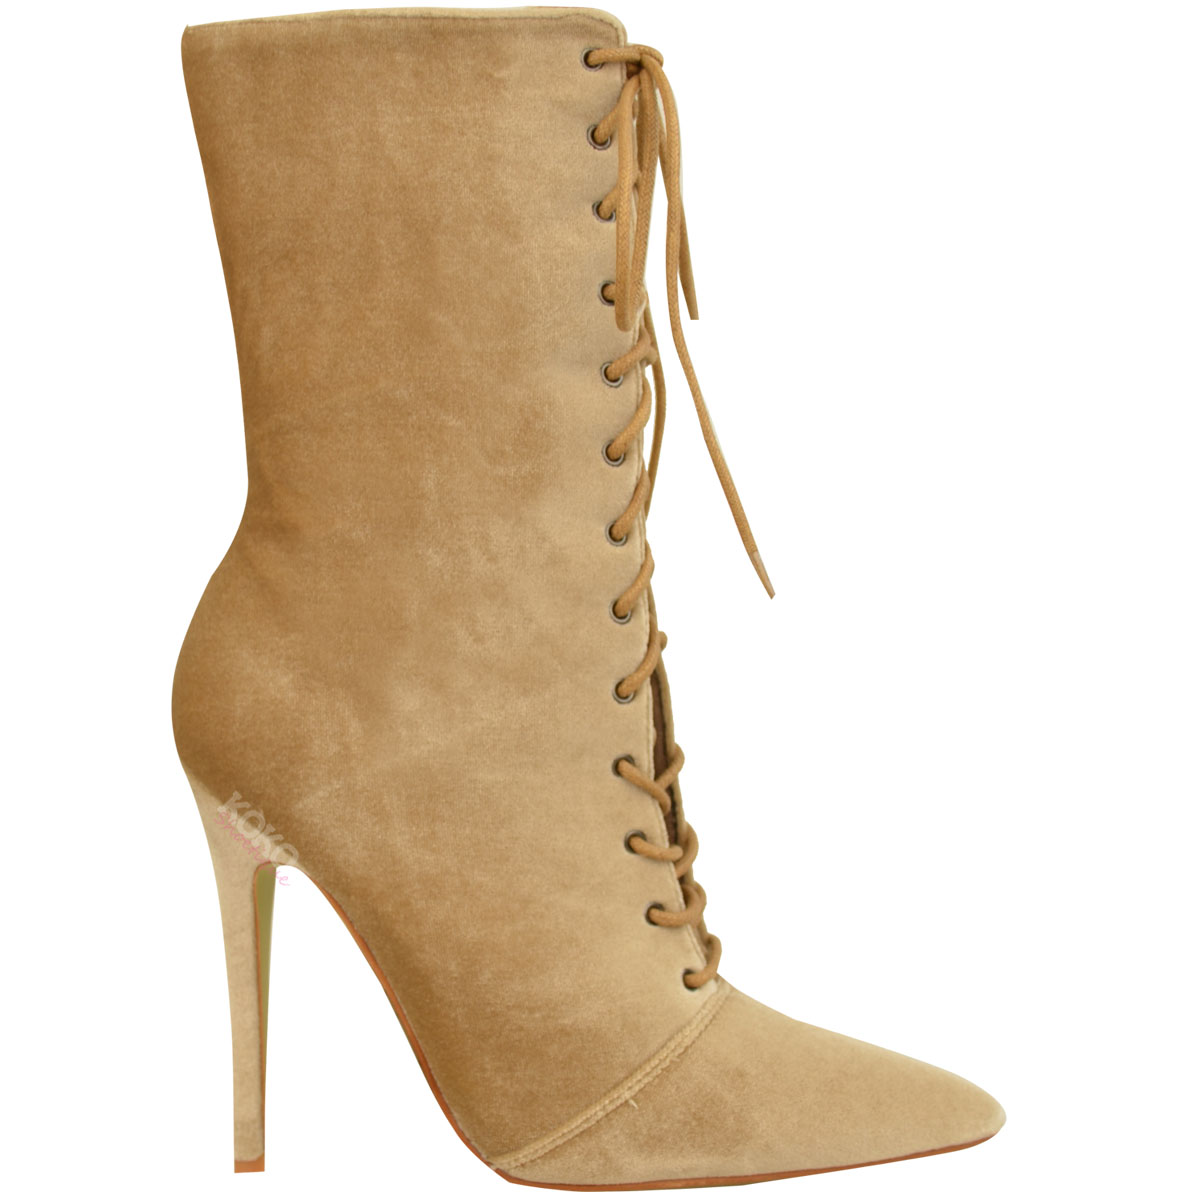 Ladies Womens Lace Up Stretchy High Heel Stiletto Ankle Boots Party ... ab343385d